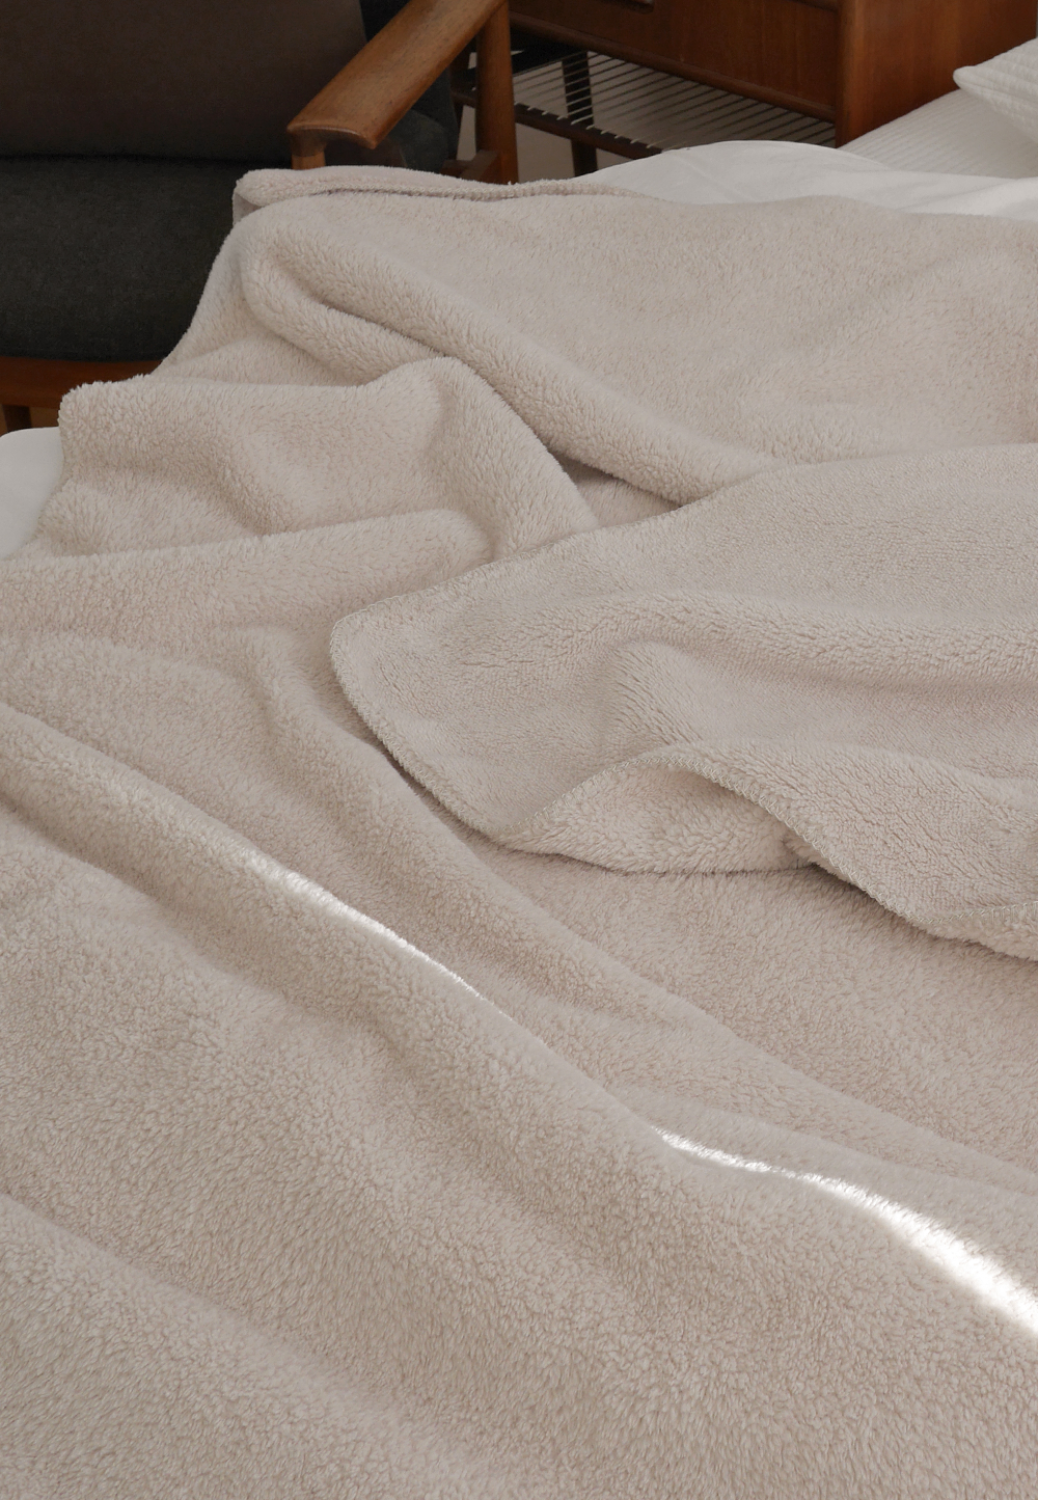 Furry Cream Fleece Blanket